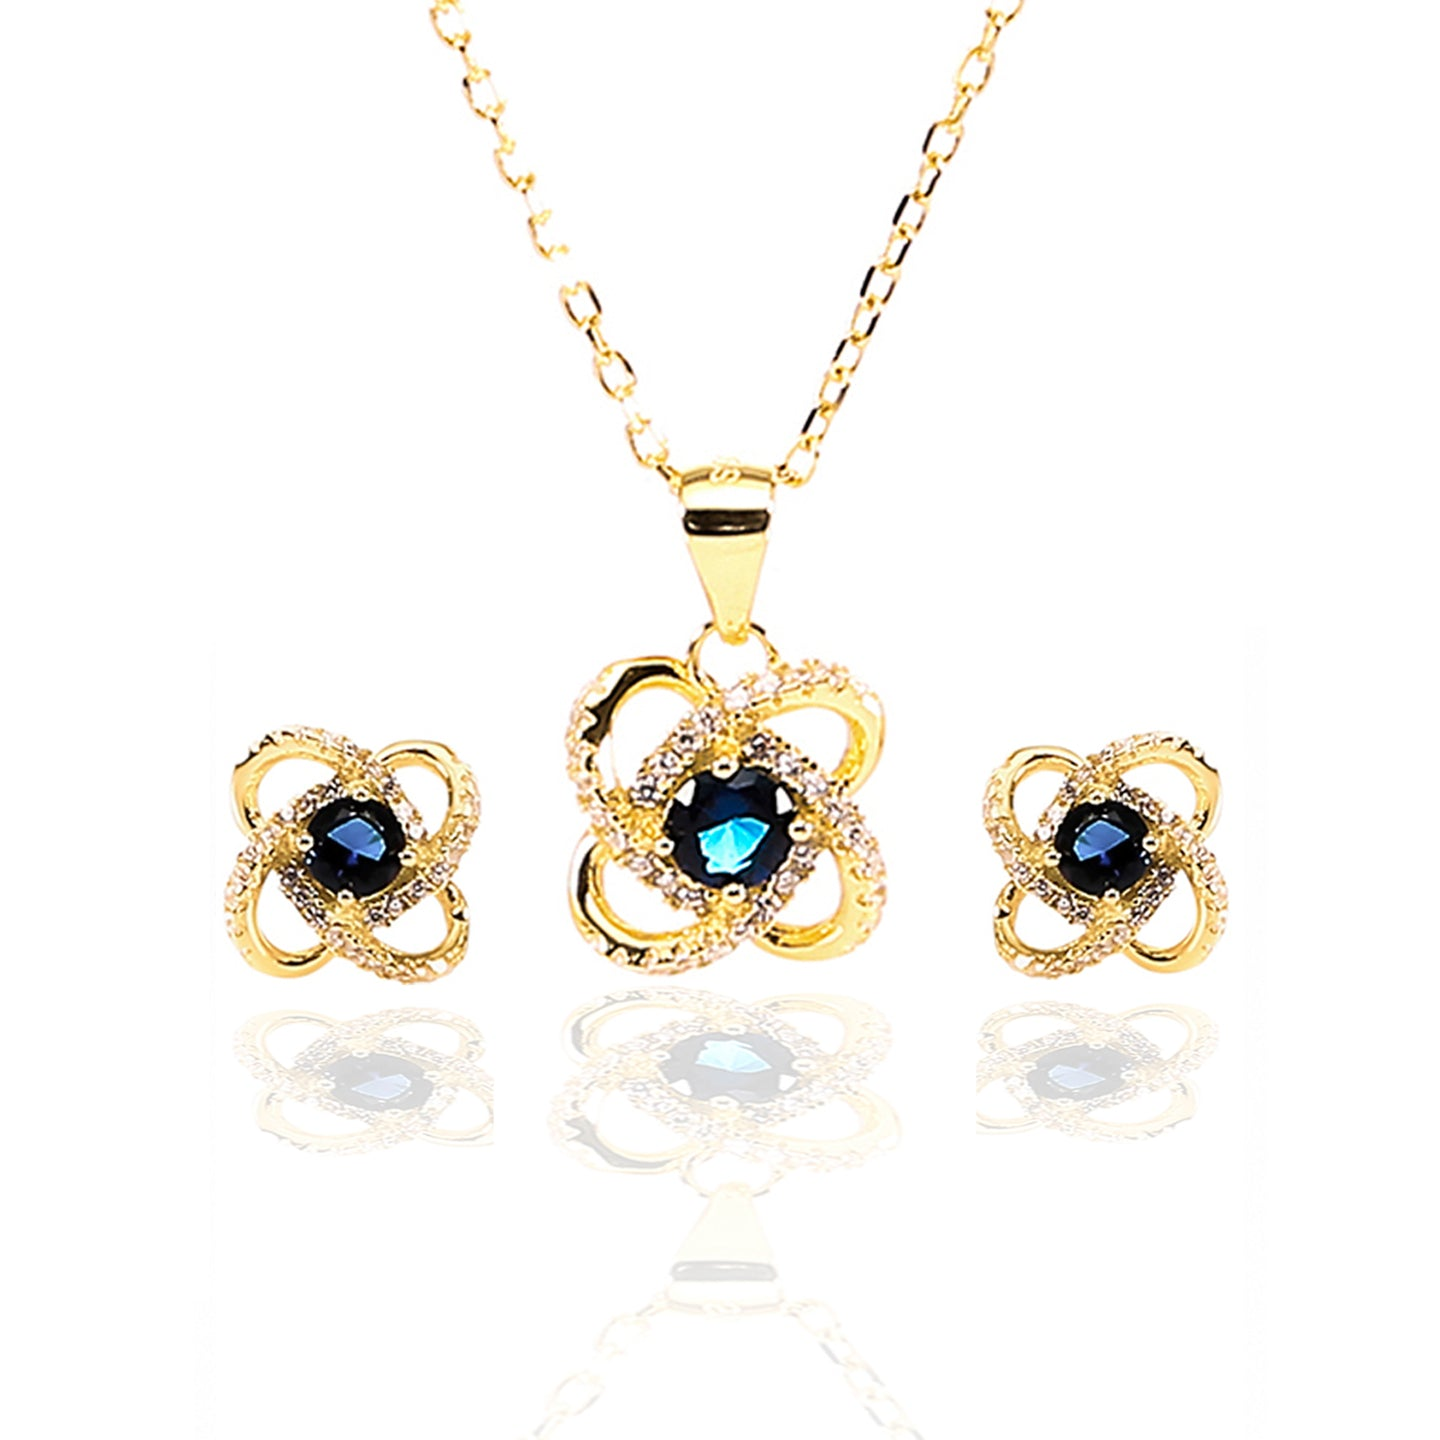 Four Leaf Clover Sapphire Pendant and Earrings Set - ARJW1005GD - ARCADIO LIFESTYLE